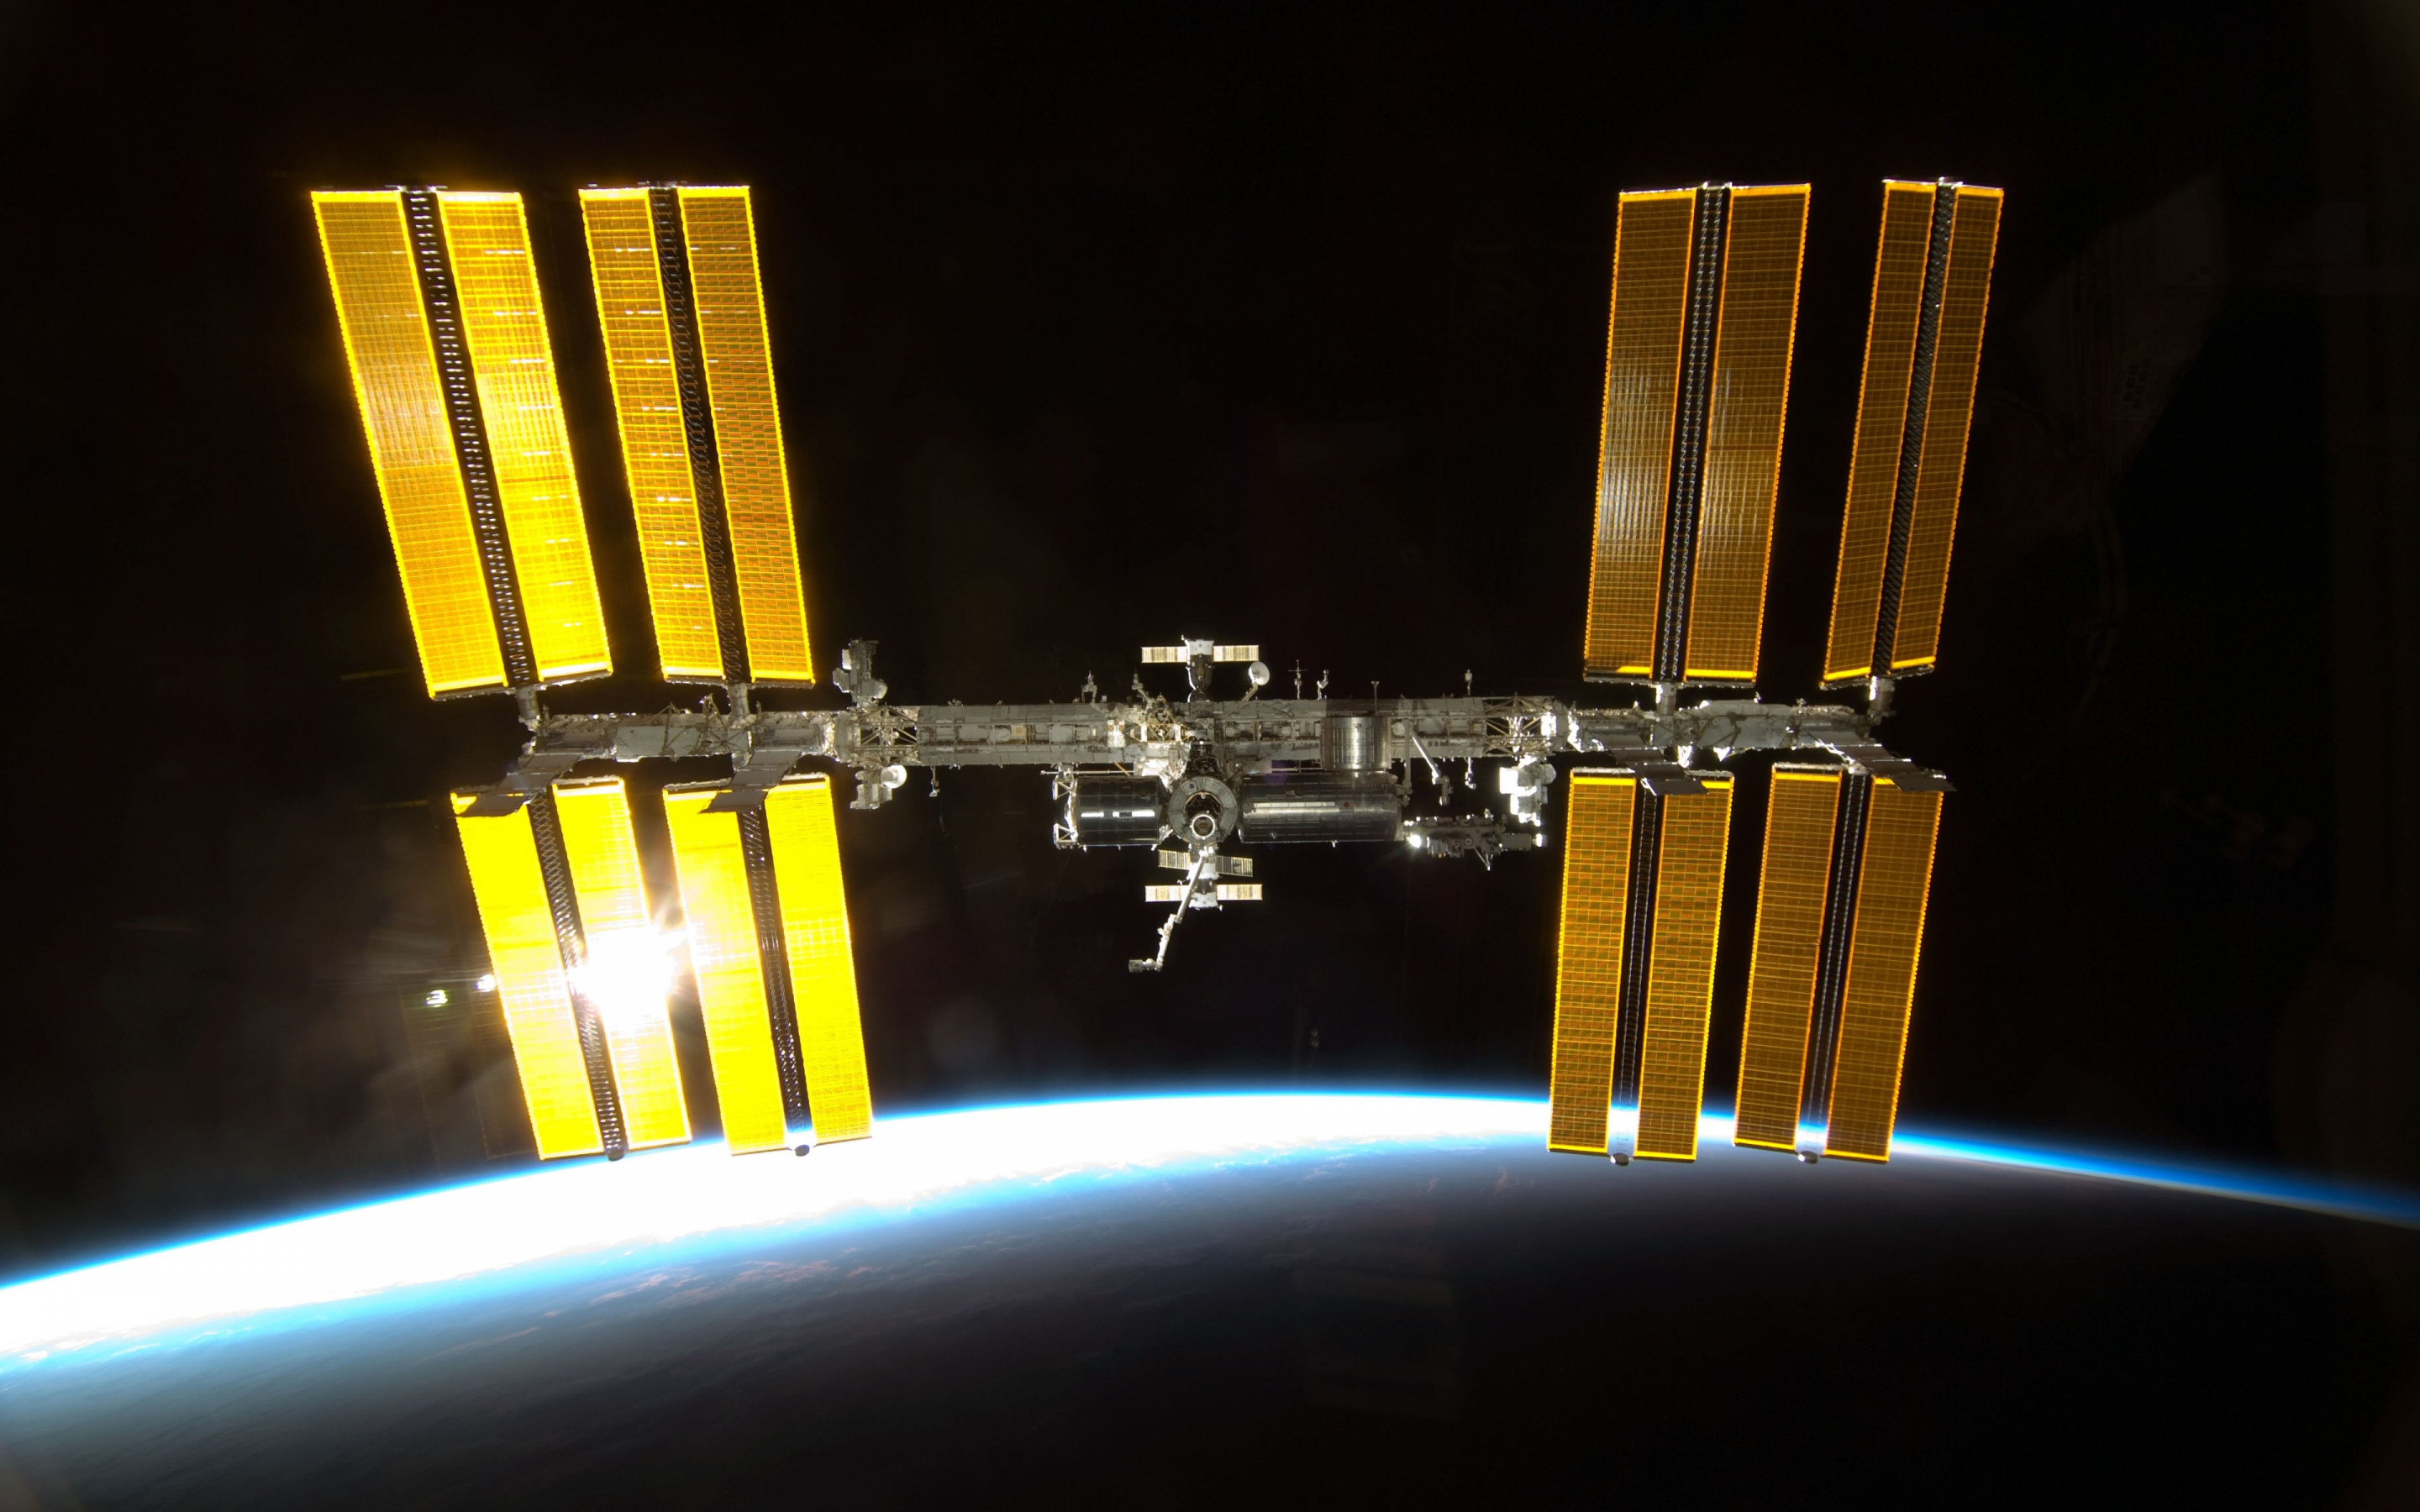 International Space Station wallpaper 2880x1800